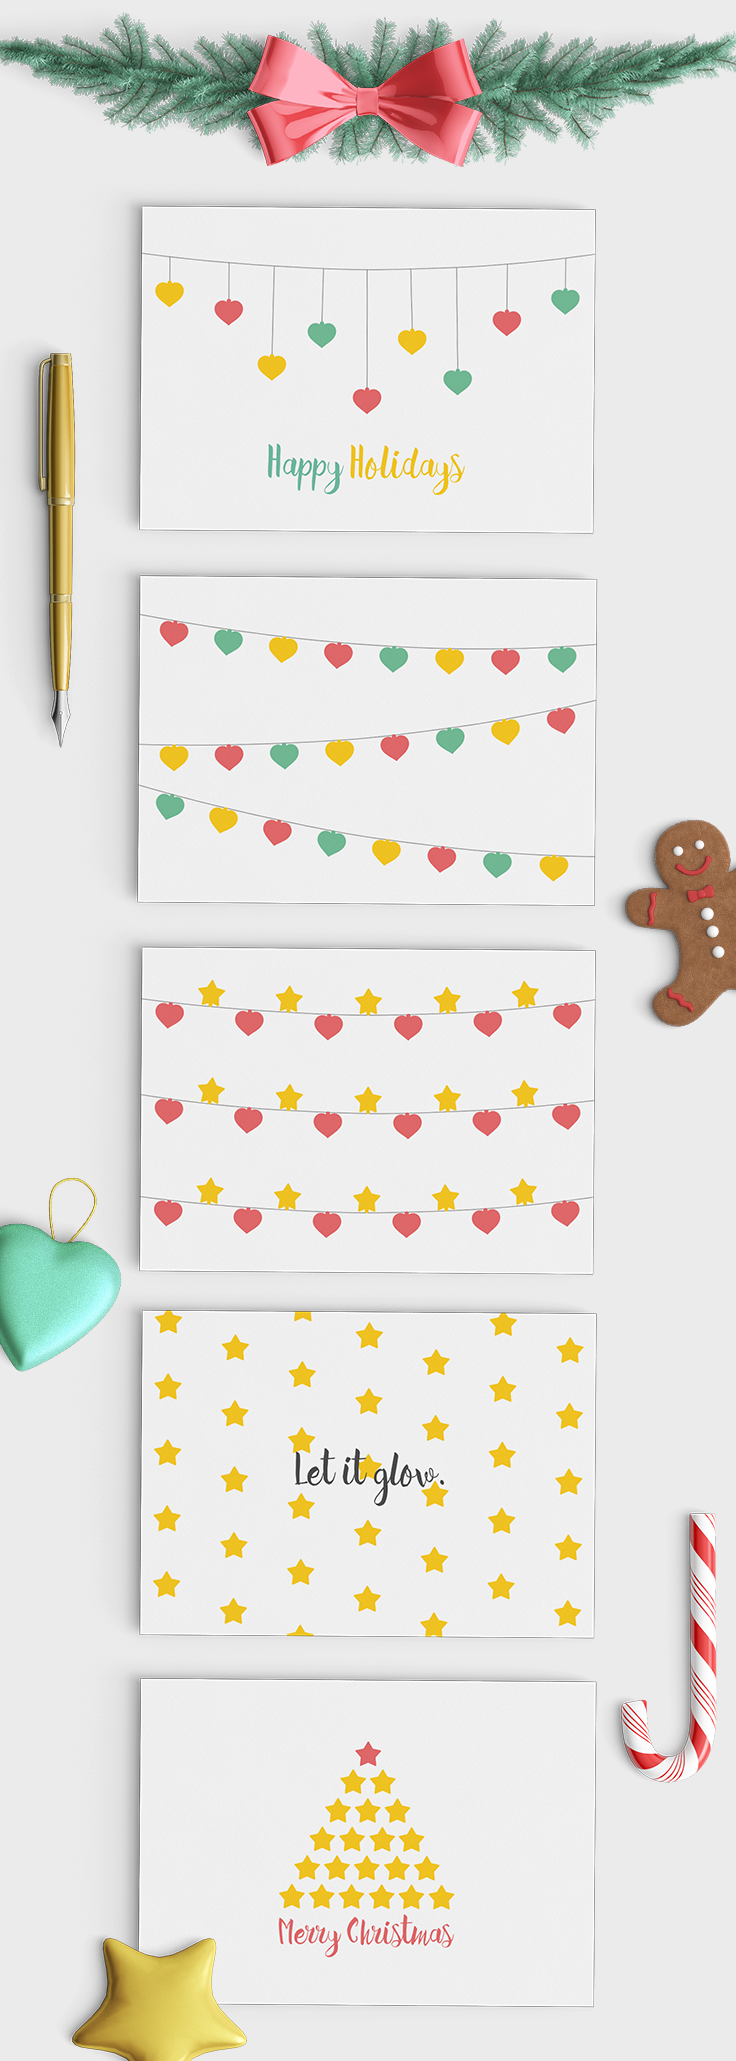 Mockup of the printable Christmas cards